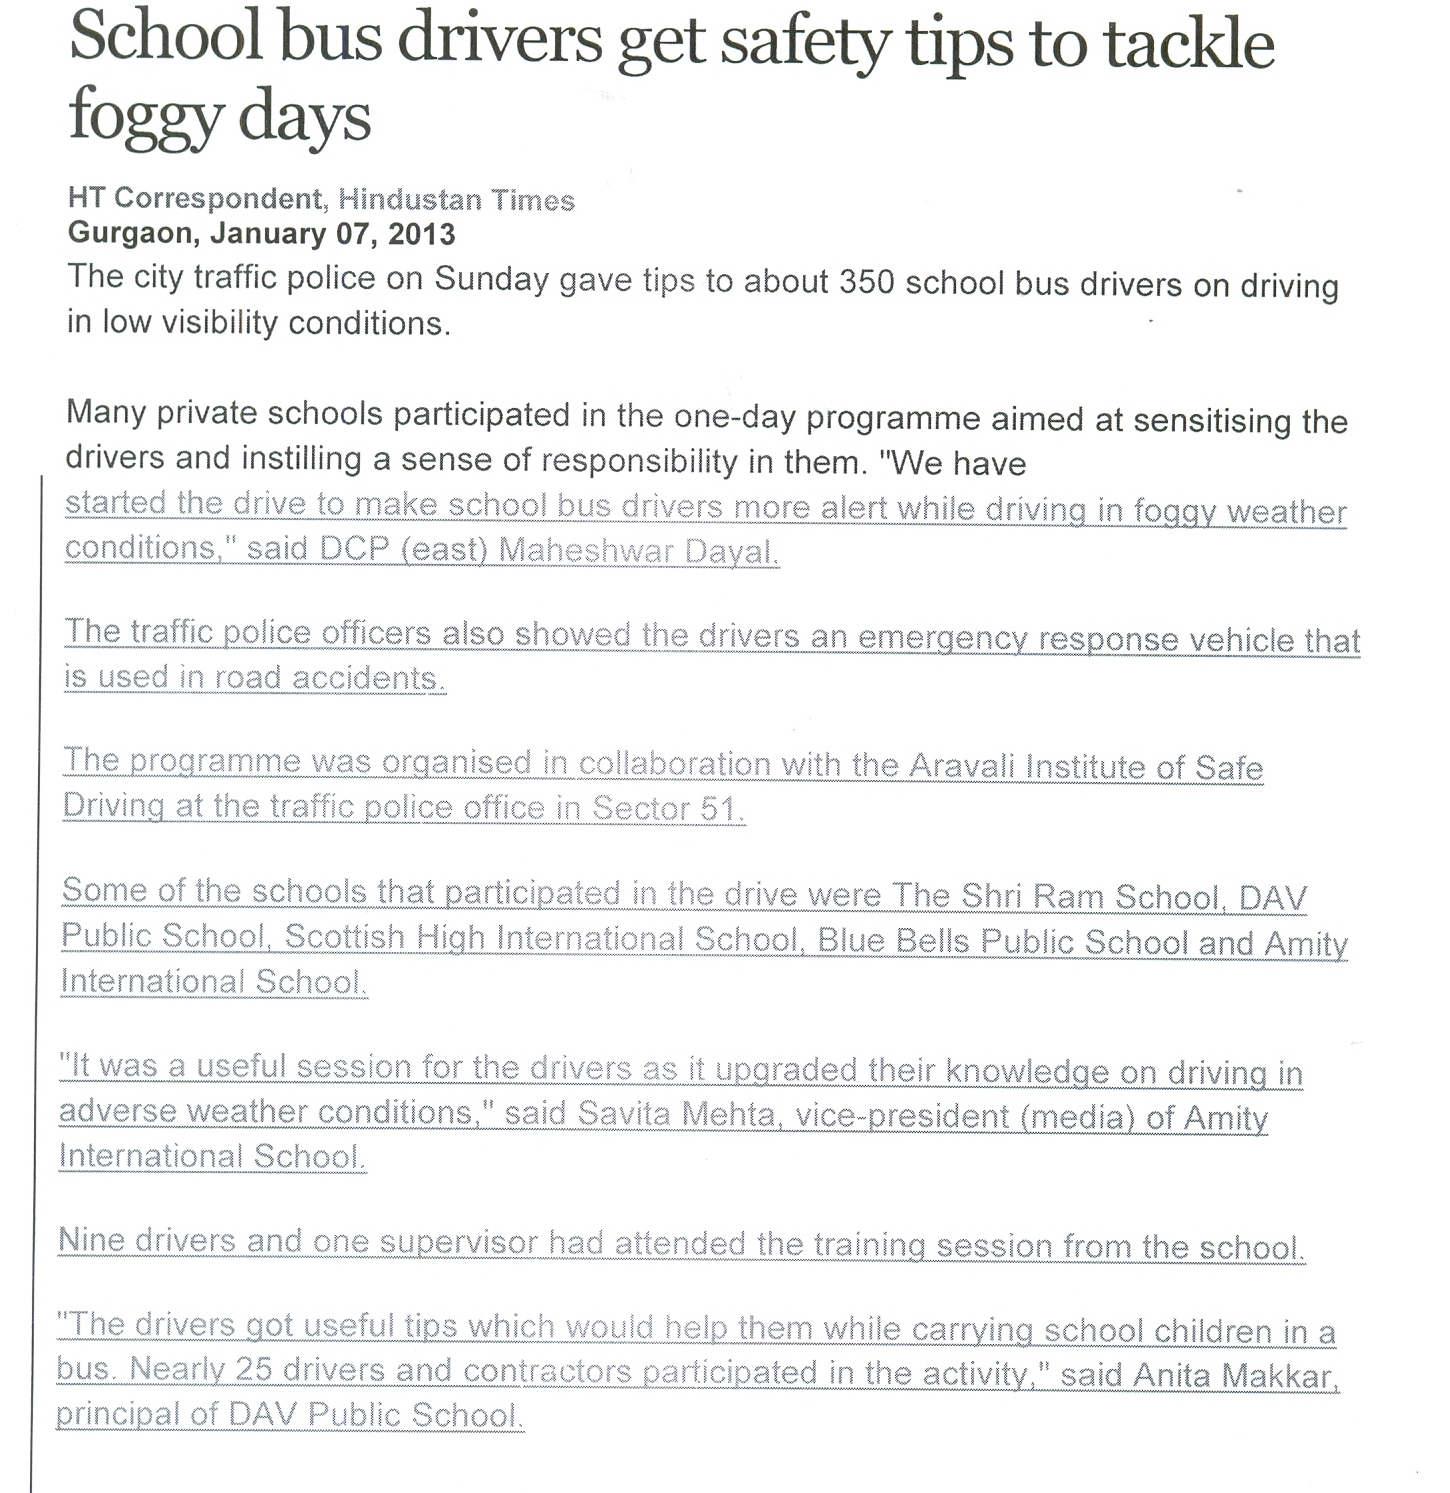 School bus drivers get safety tips to tackle foggy days